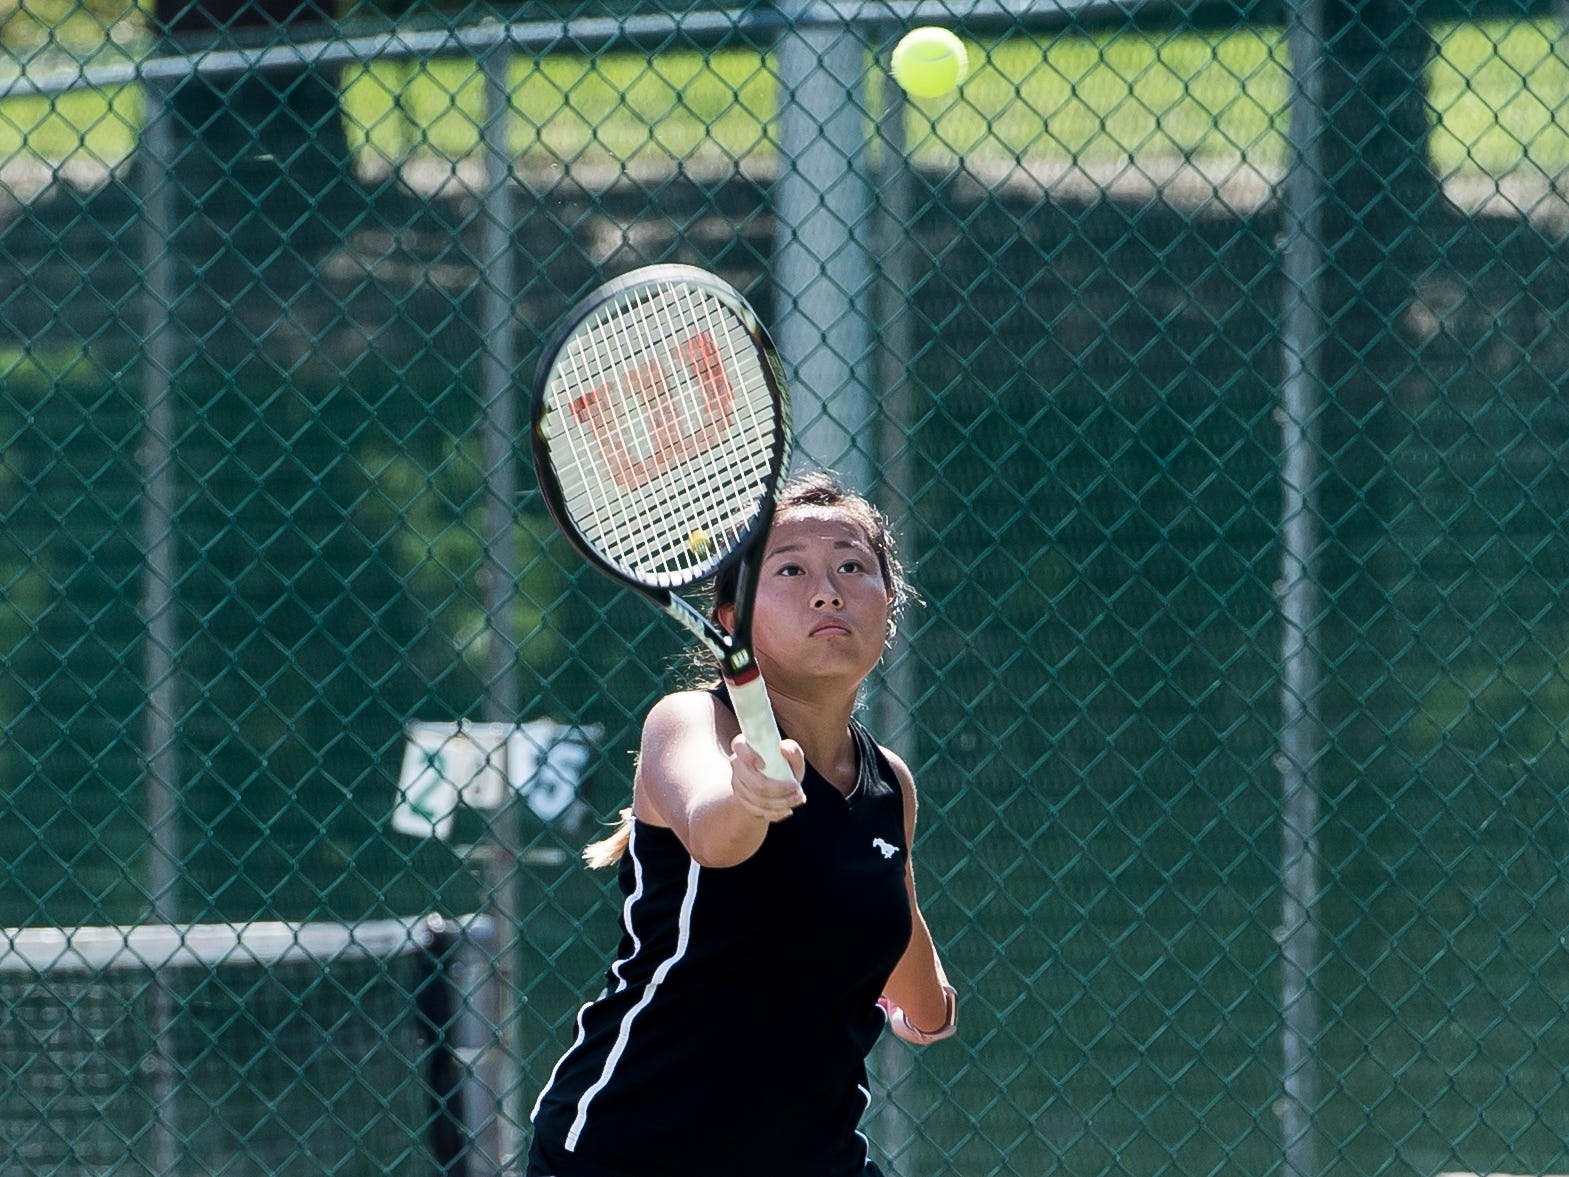 South Western's Karen Yang returns the ball to Red Lion's Zamirah Morten during the first round of the YAIAA 3A singles tournament on October 4, 2018. Yang won 6-1, 6-0.